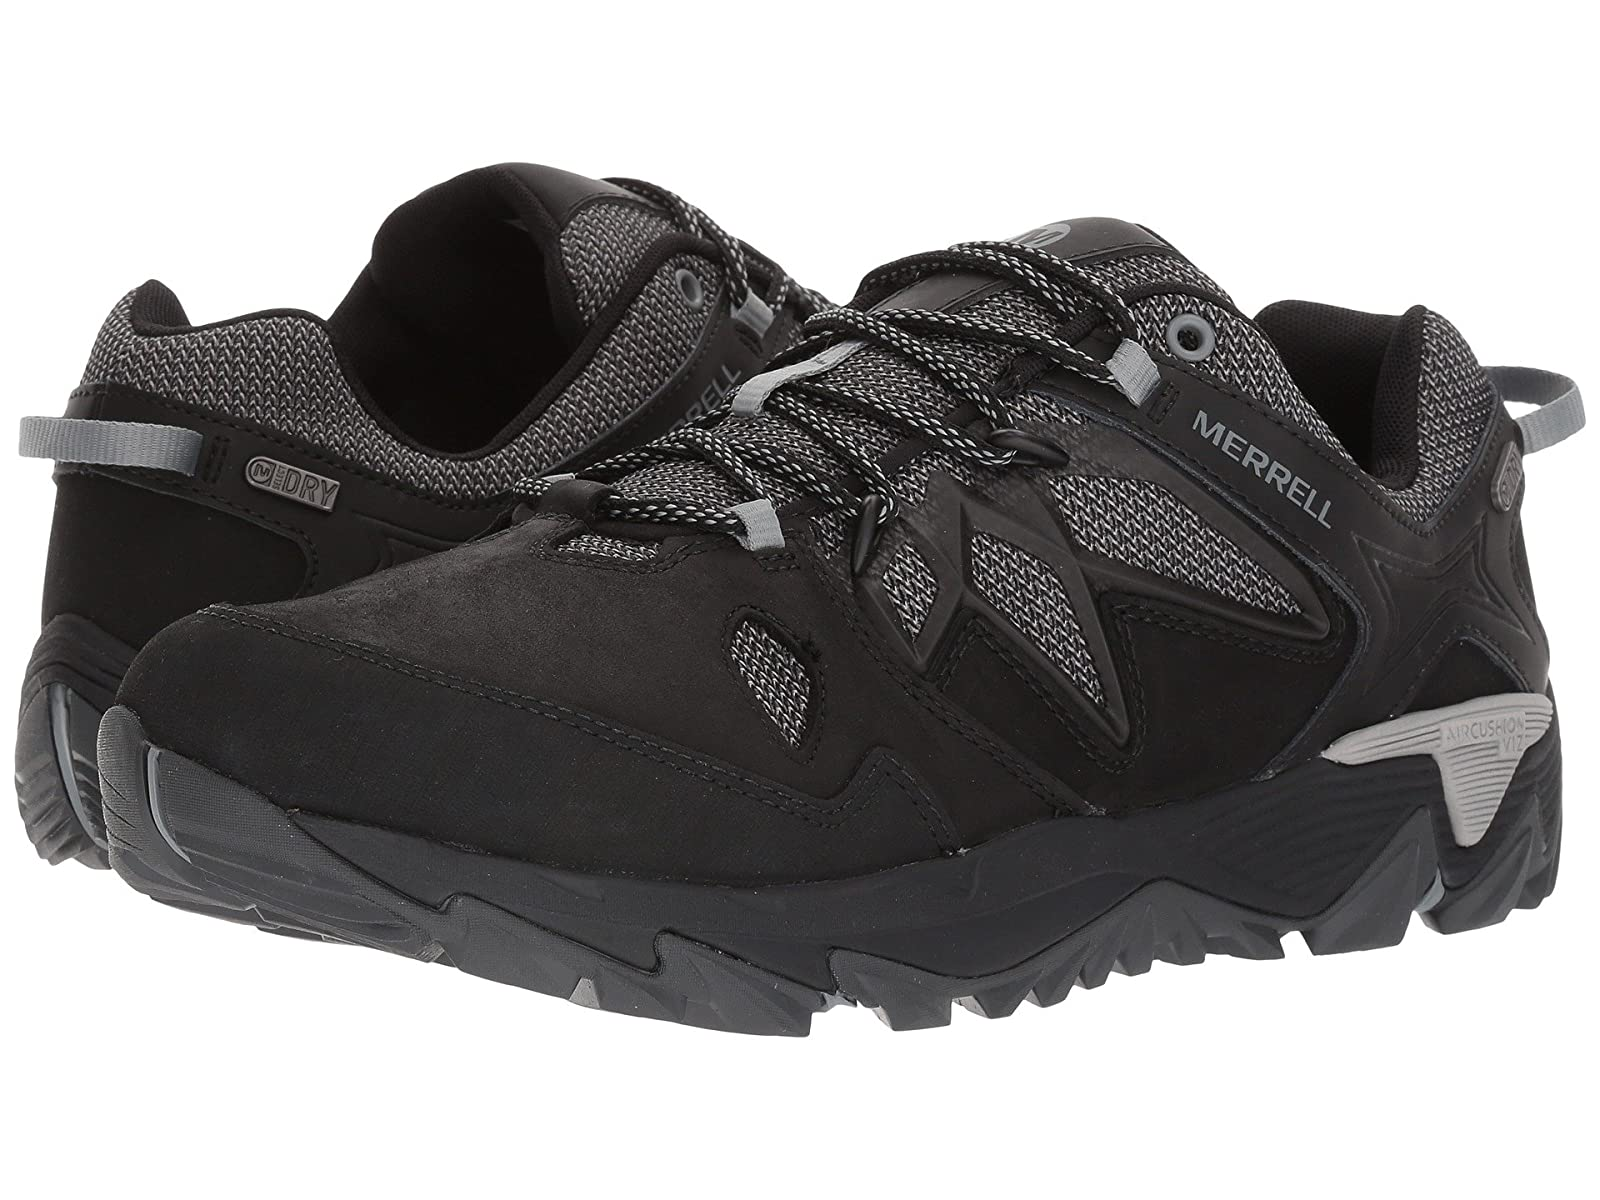 Merrell All Out Blaze 2 WaterproofAtmospheric grades have affordable shoes